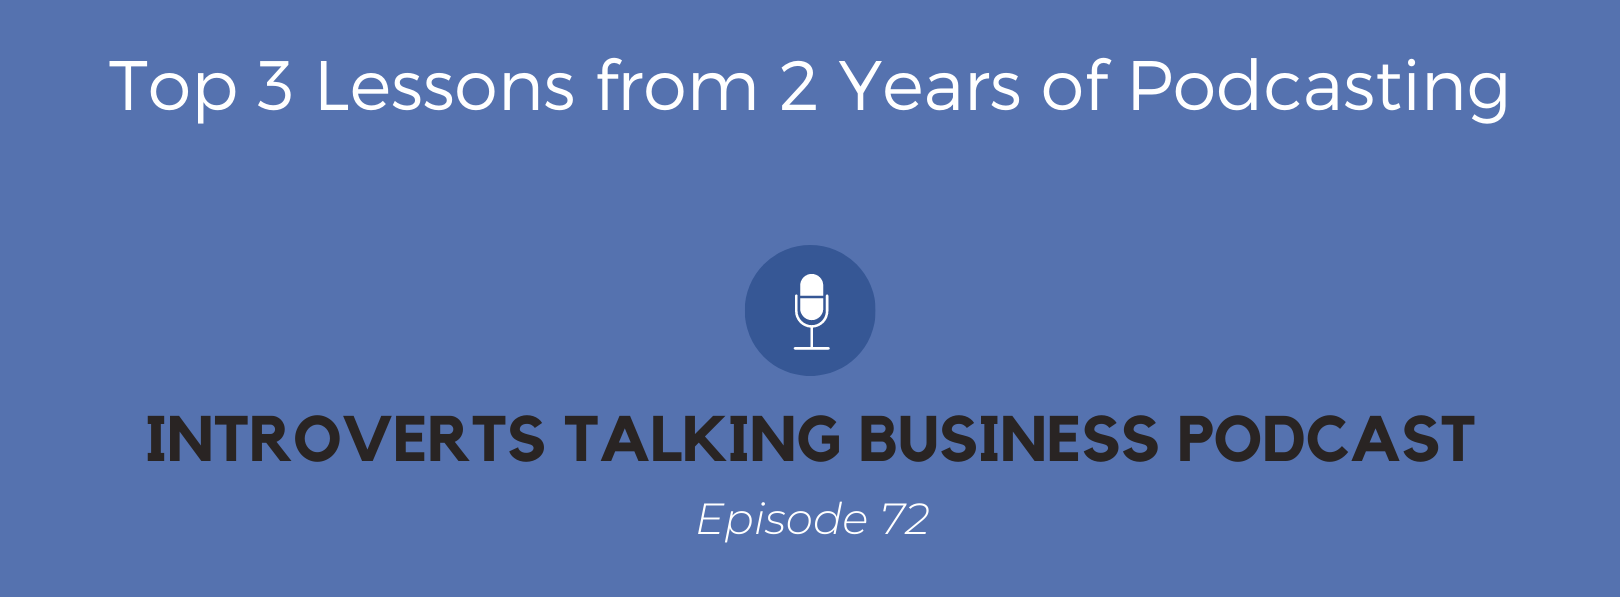 3 Lessons from two years of podcasting